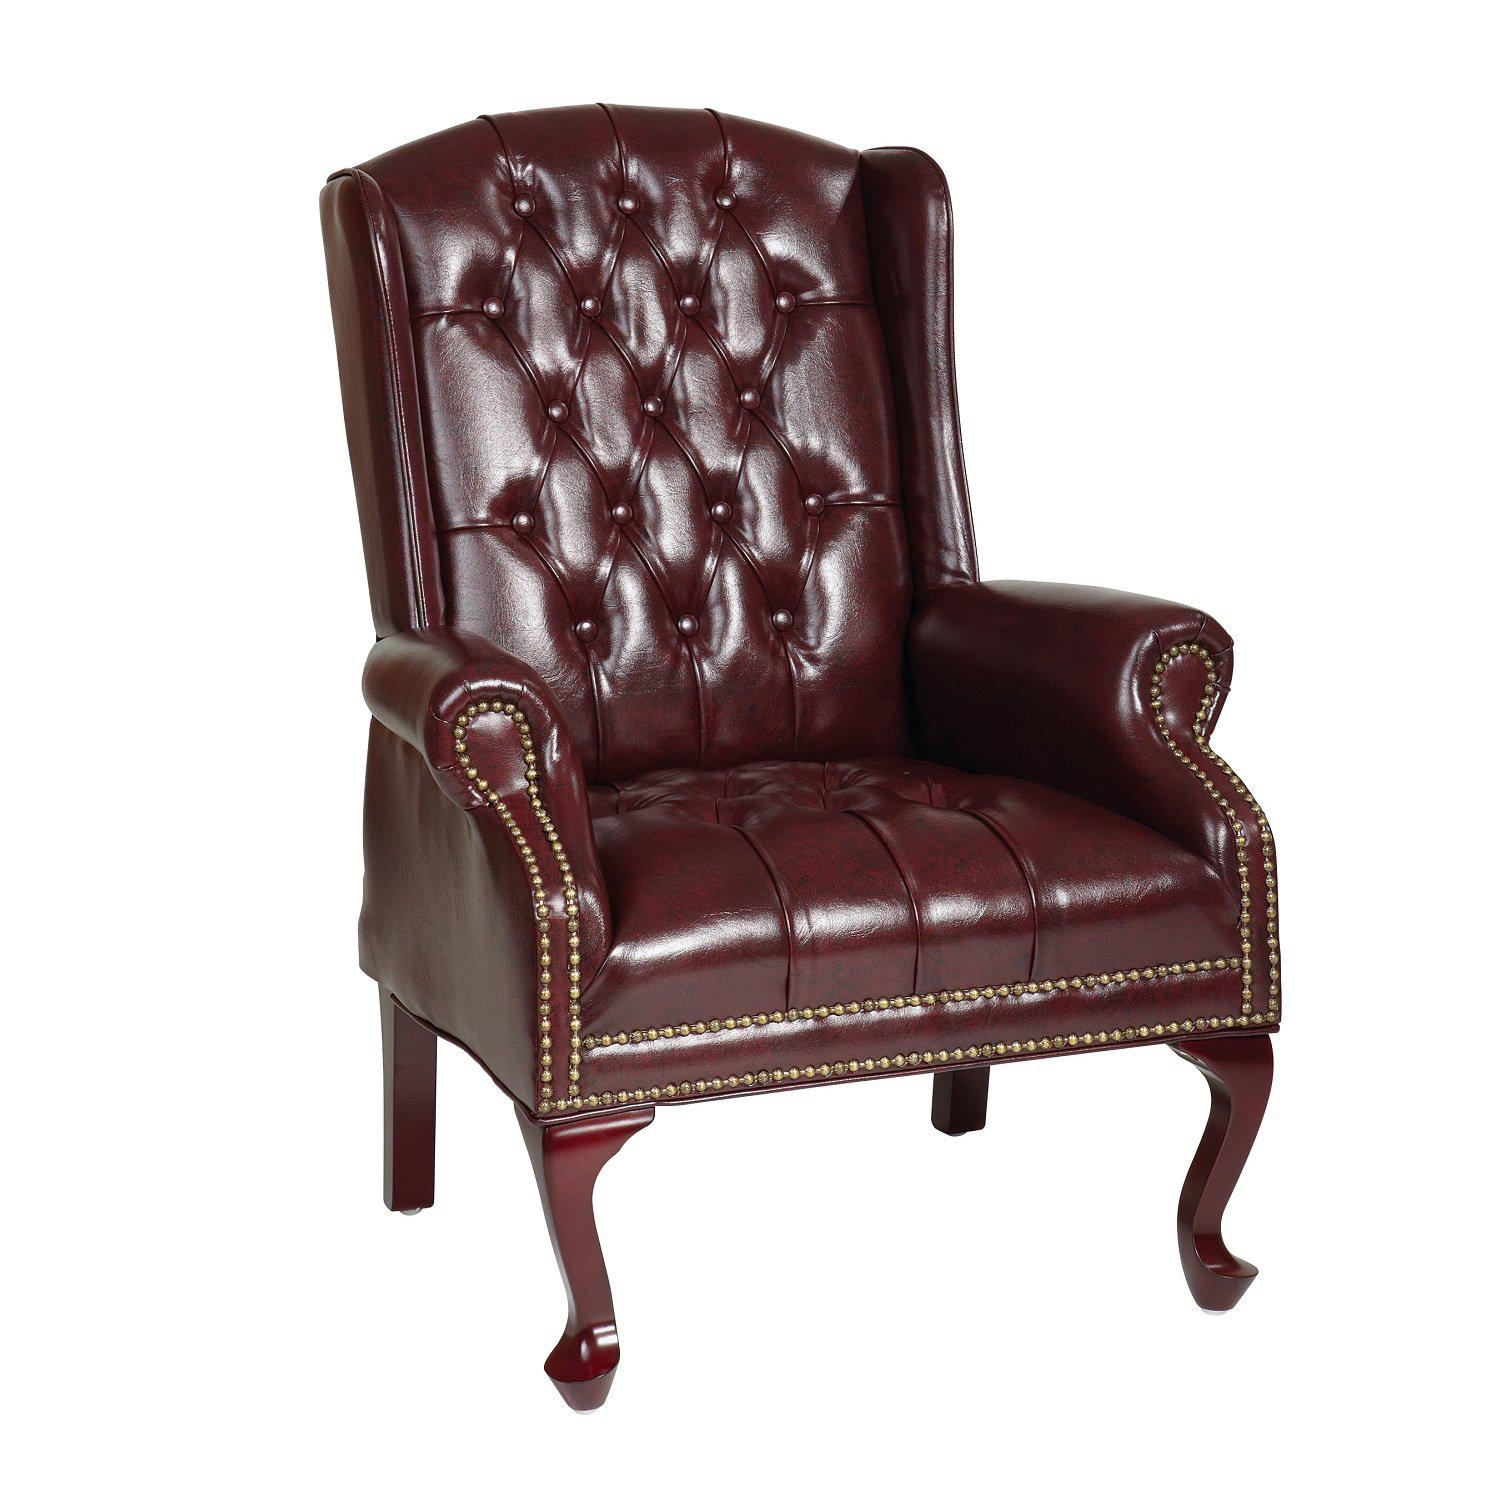 Traditional Queen Anne Style Chair